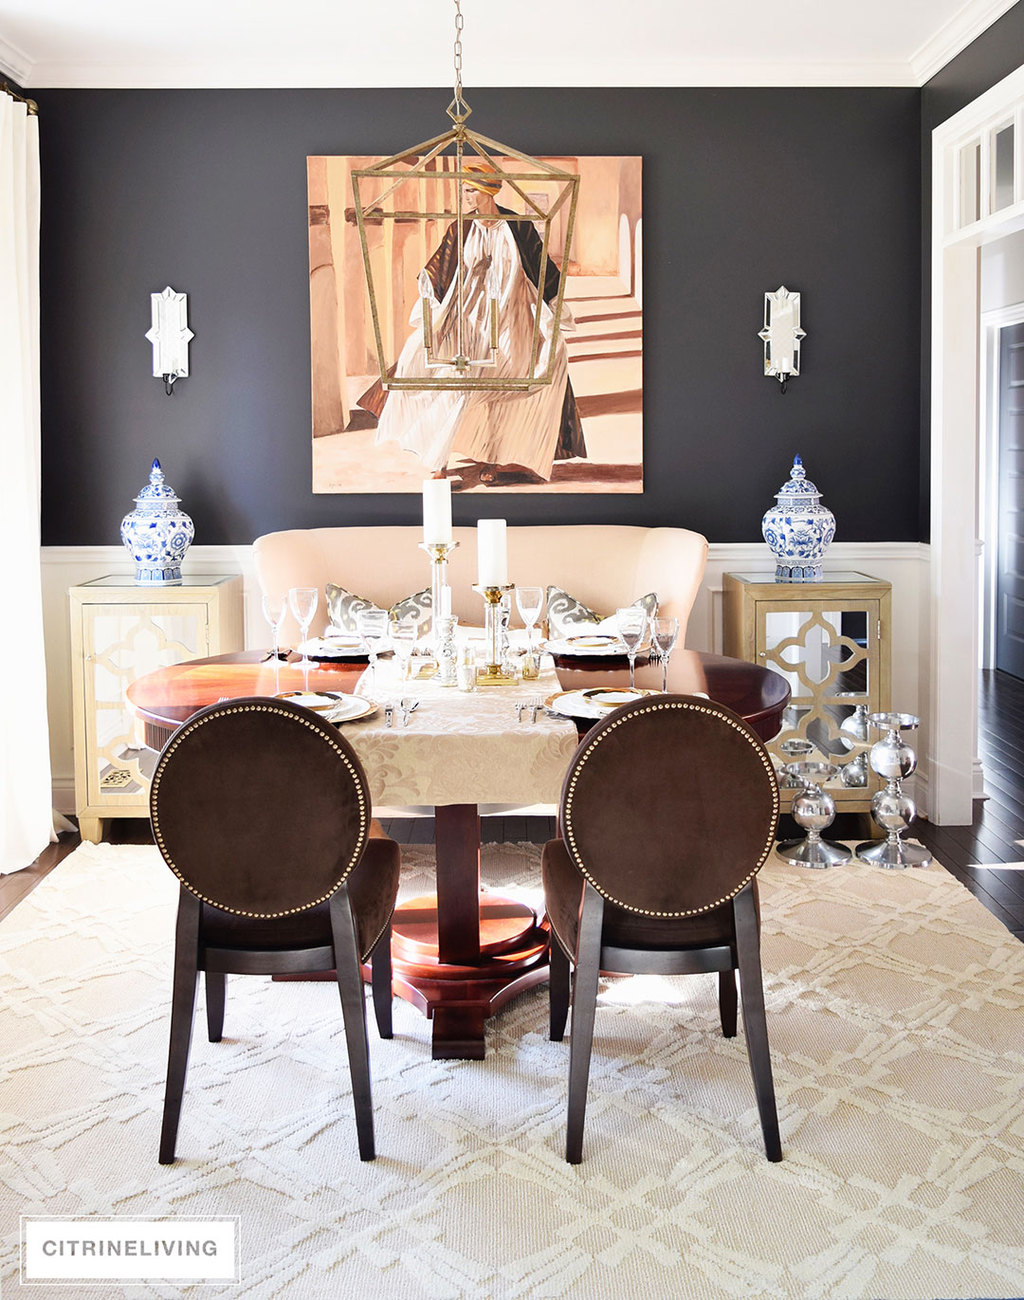 CitrineLiving_Spring_Dining_Room21 Dining Room Black Walls Neutral Rug  Brass Pendant